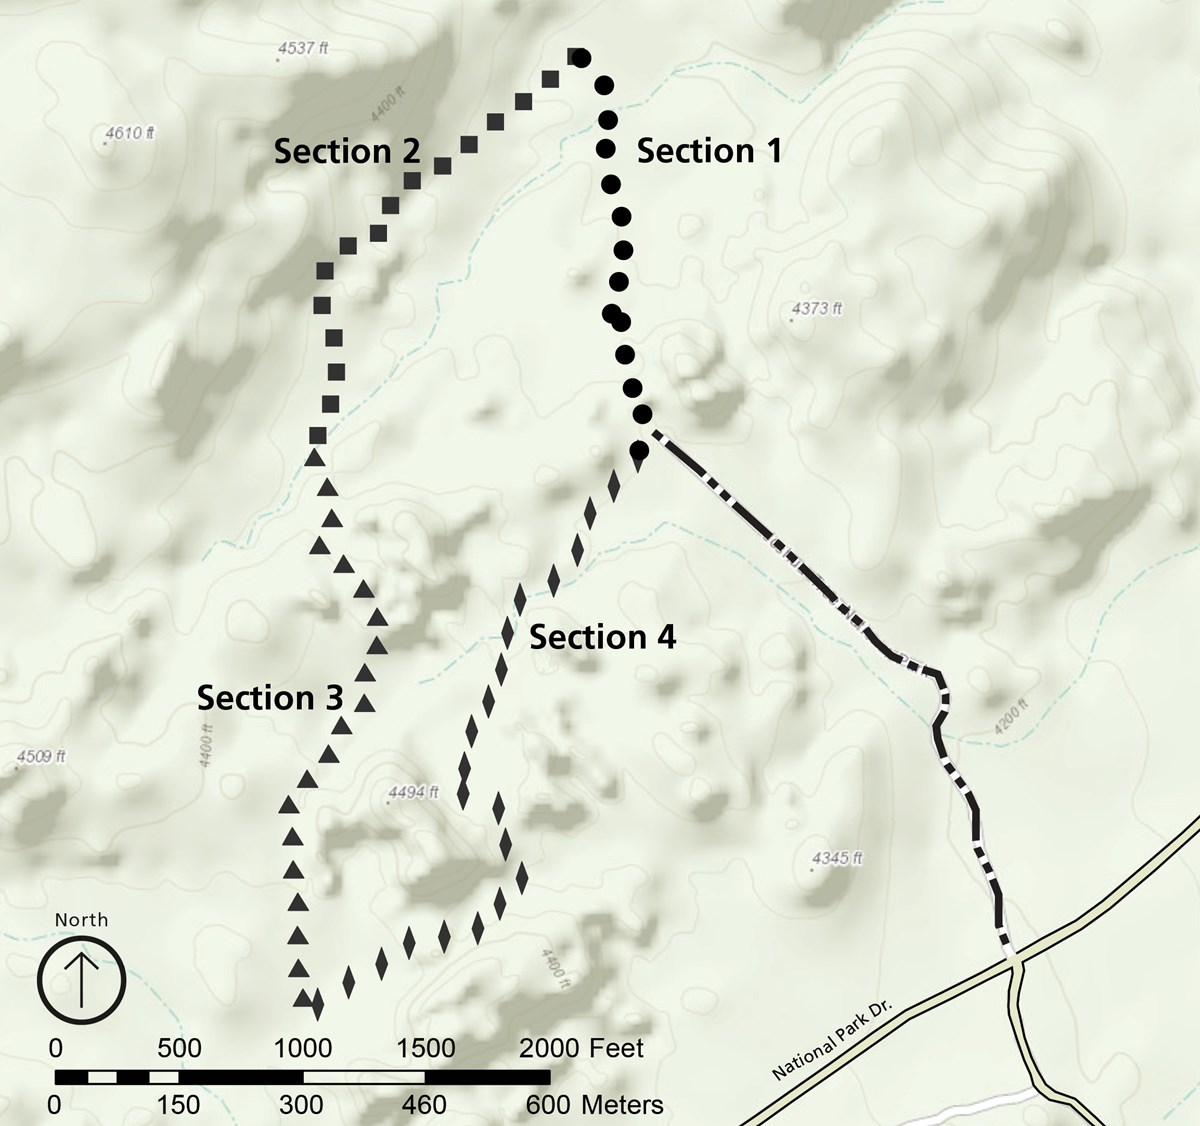 Map of the Split Rock area. The trail makes a loop, with a spur that goes to the road. Starting from where the spur meets the loop, at approximately 3 o'clock on a clock face, the trail moves counter-clockwise through sections 1-4, each 1/4 of the total.